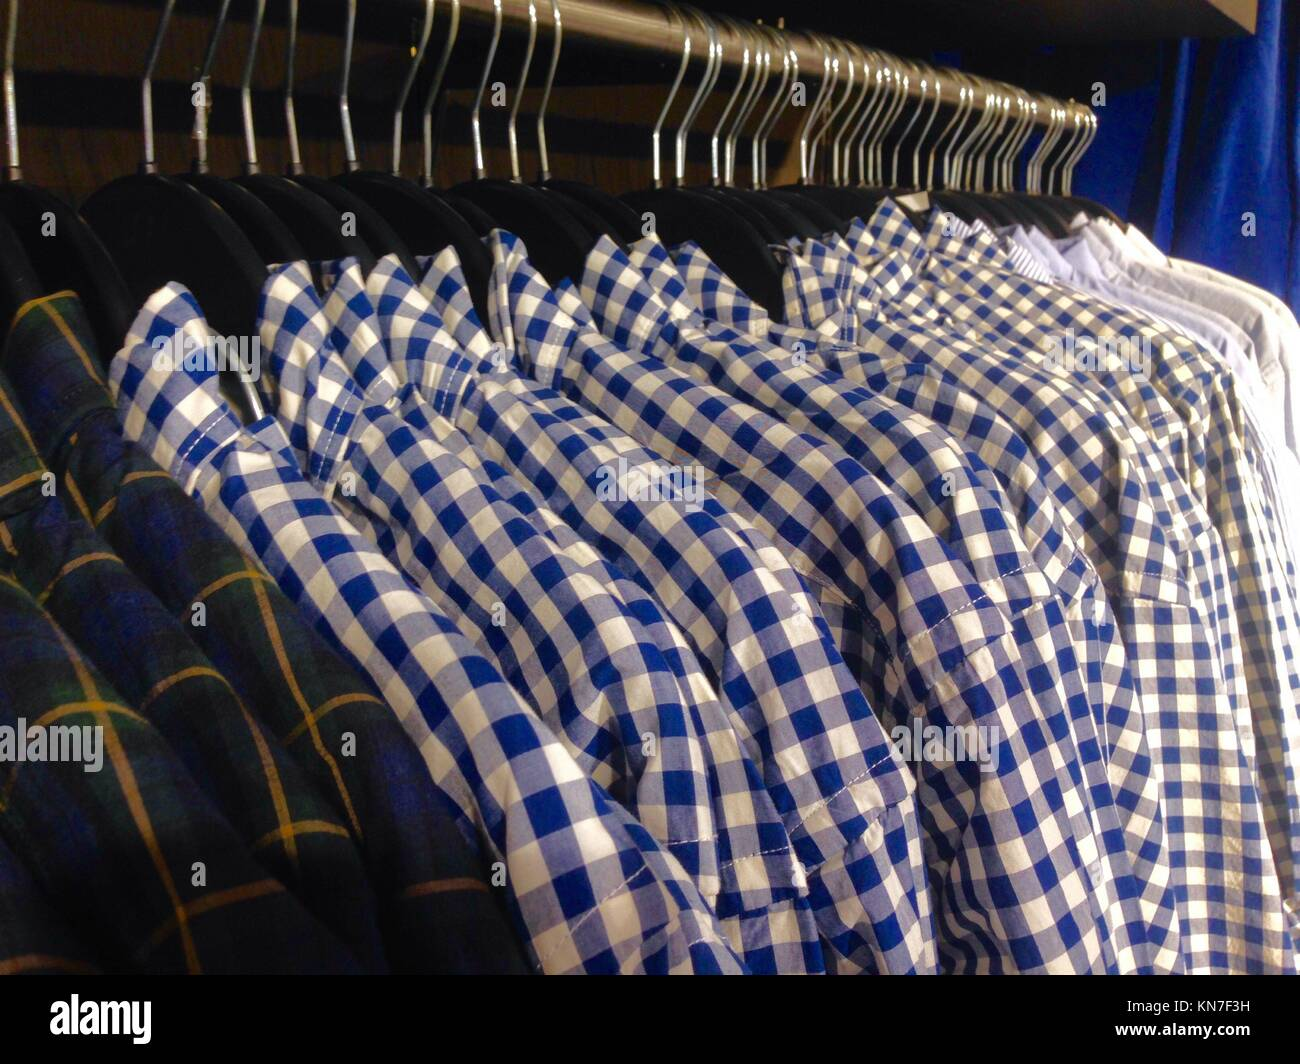 Hanger full of men's chequered shirts at shop. - Stock Image